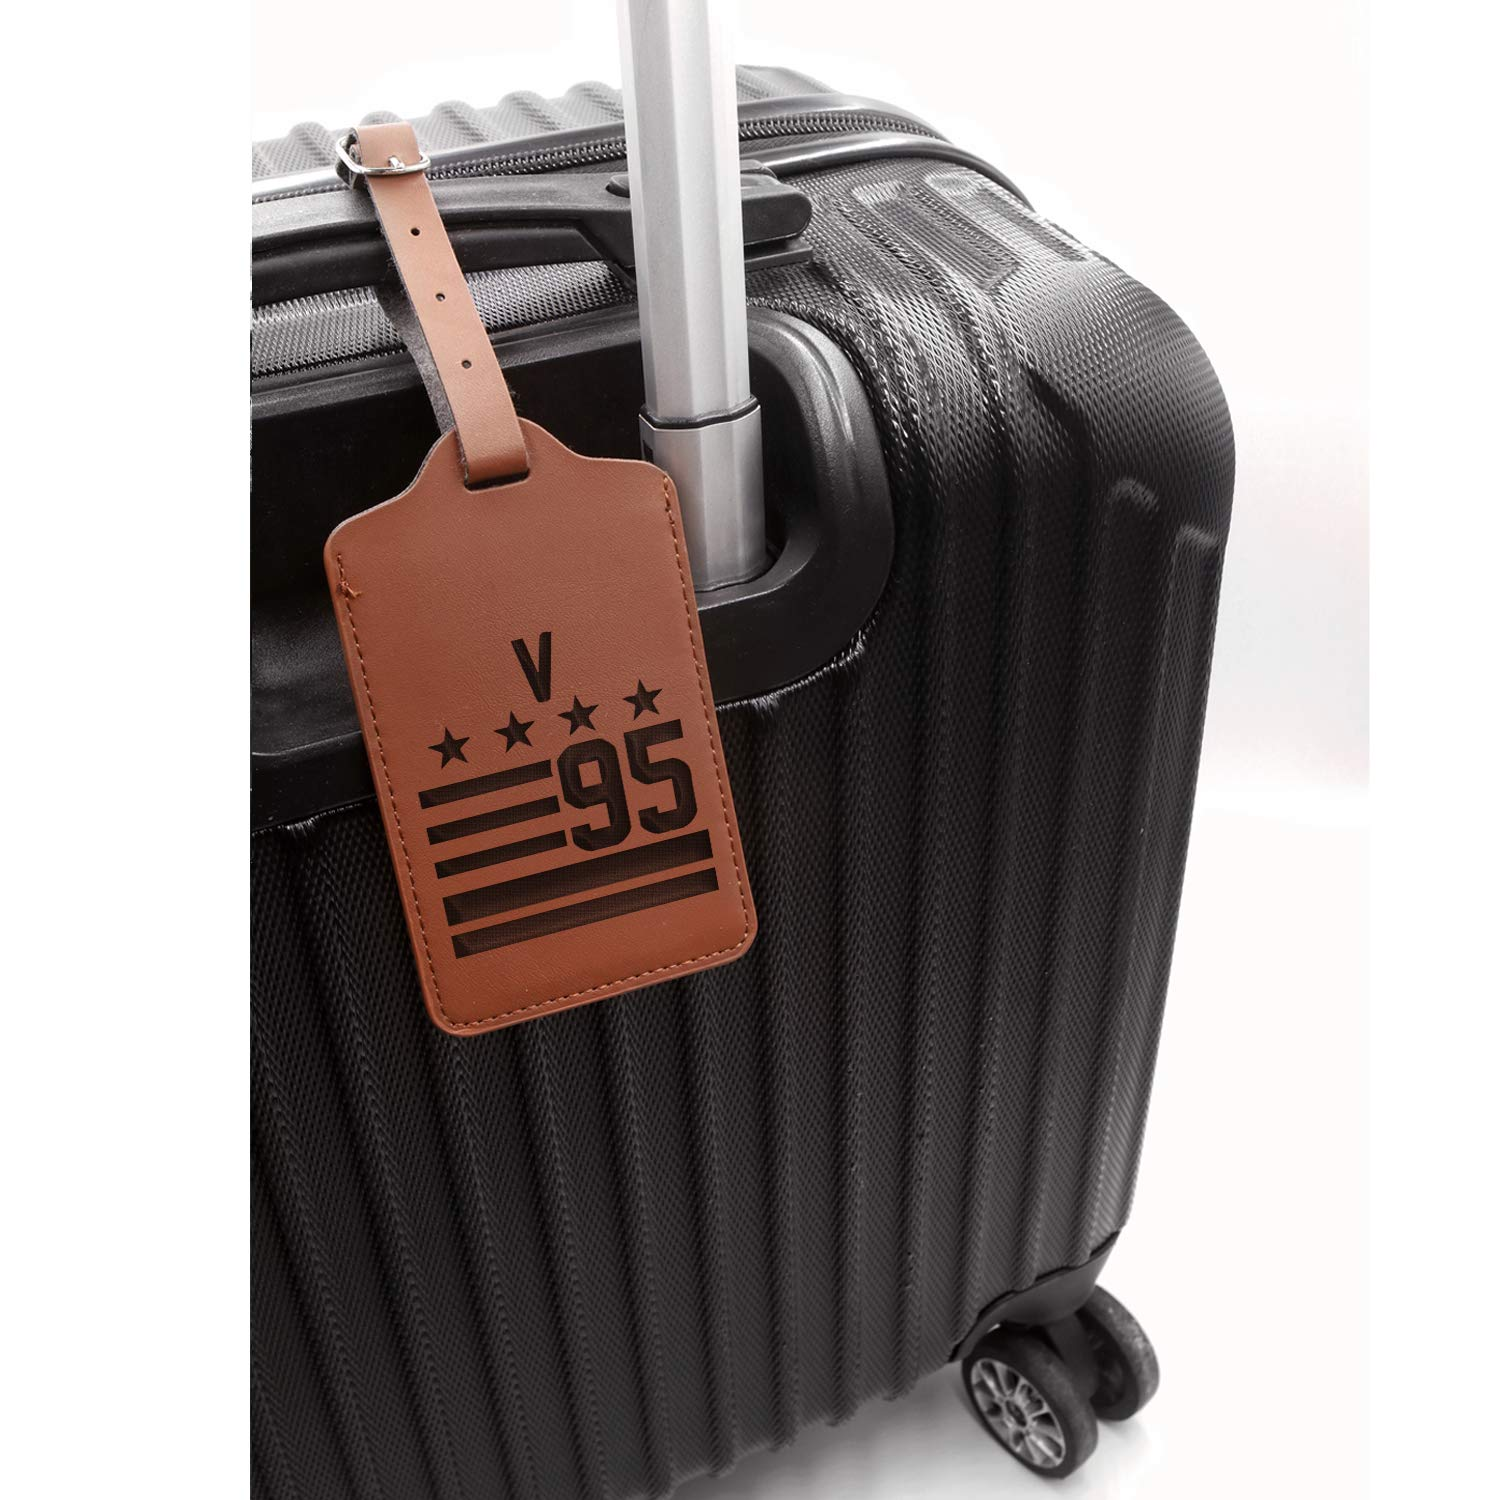 - United States Standard Hallyu Kpop Bts V 95 Engraved Synthetic Pu Leather Luggage Tag Handcrafted By Mastercraftsmen London Tan - Set Of 2 For Any Type Of Luggage